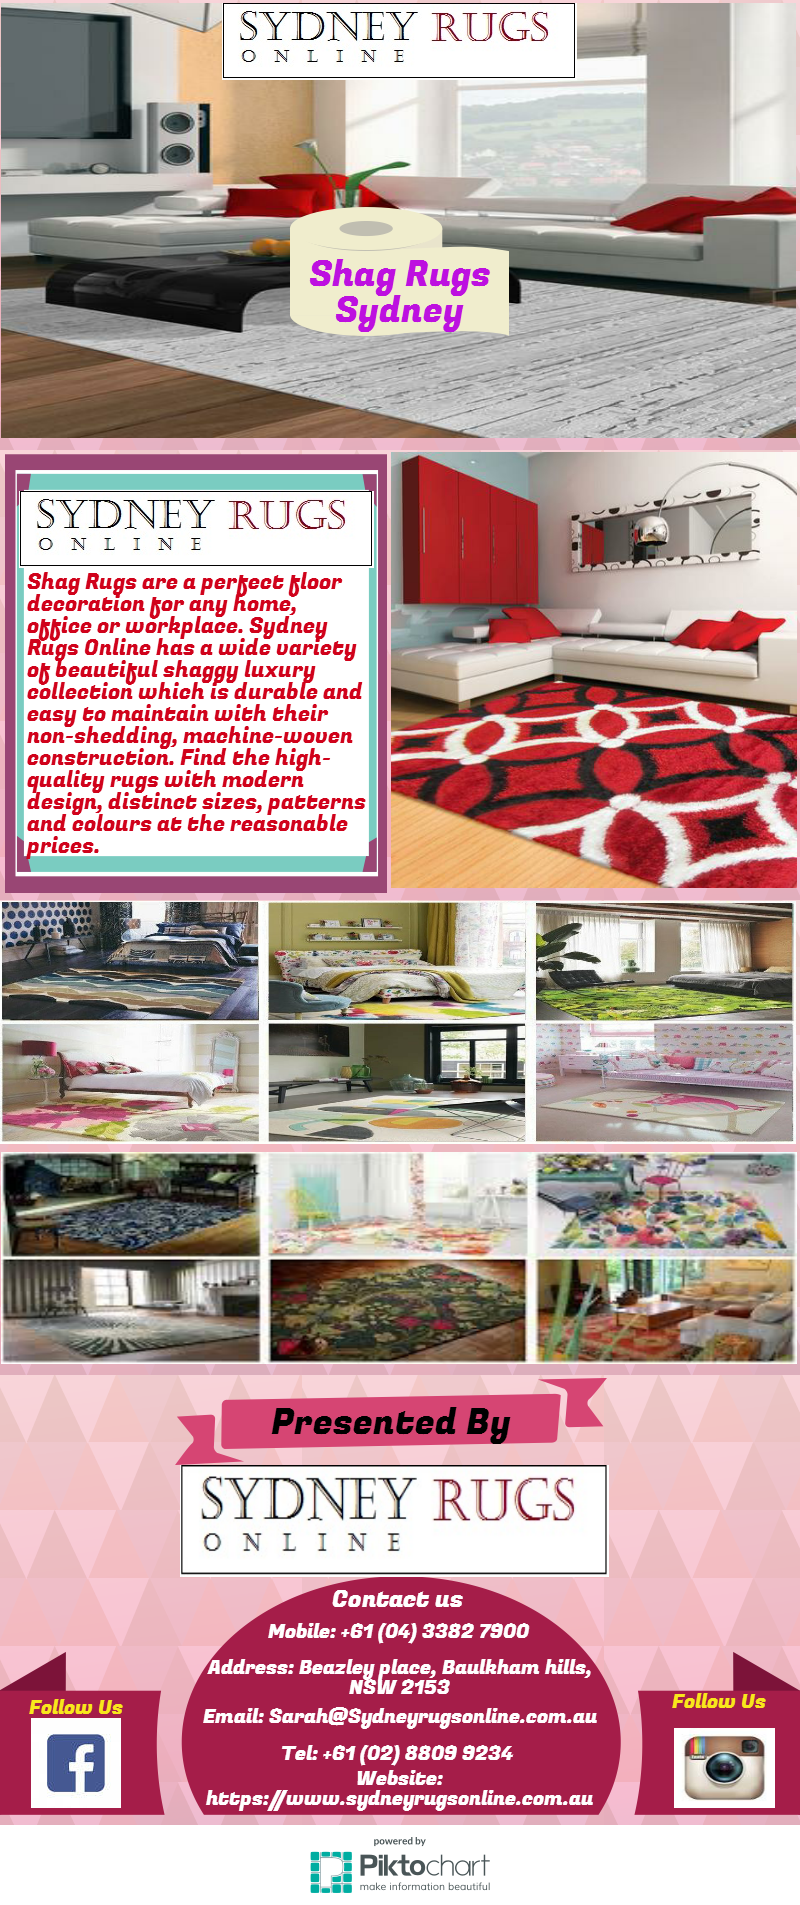 We Have The Latest Design And Colour Shag Rugs Sydney At Affordable Price For